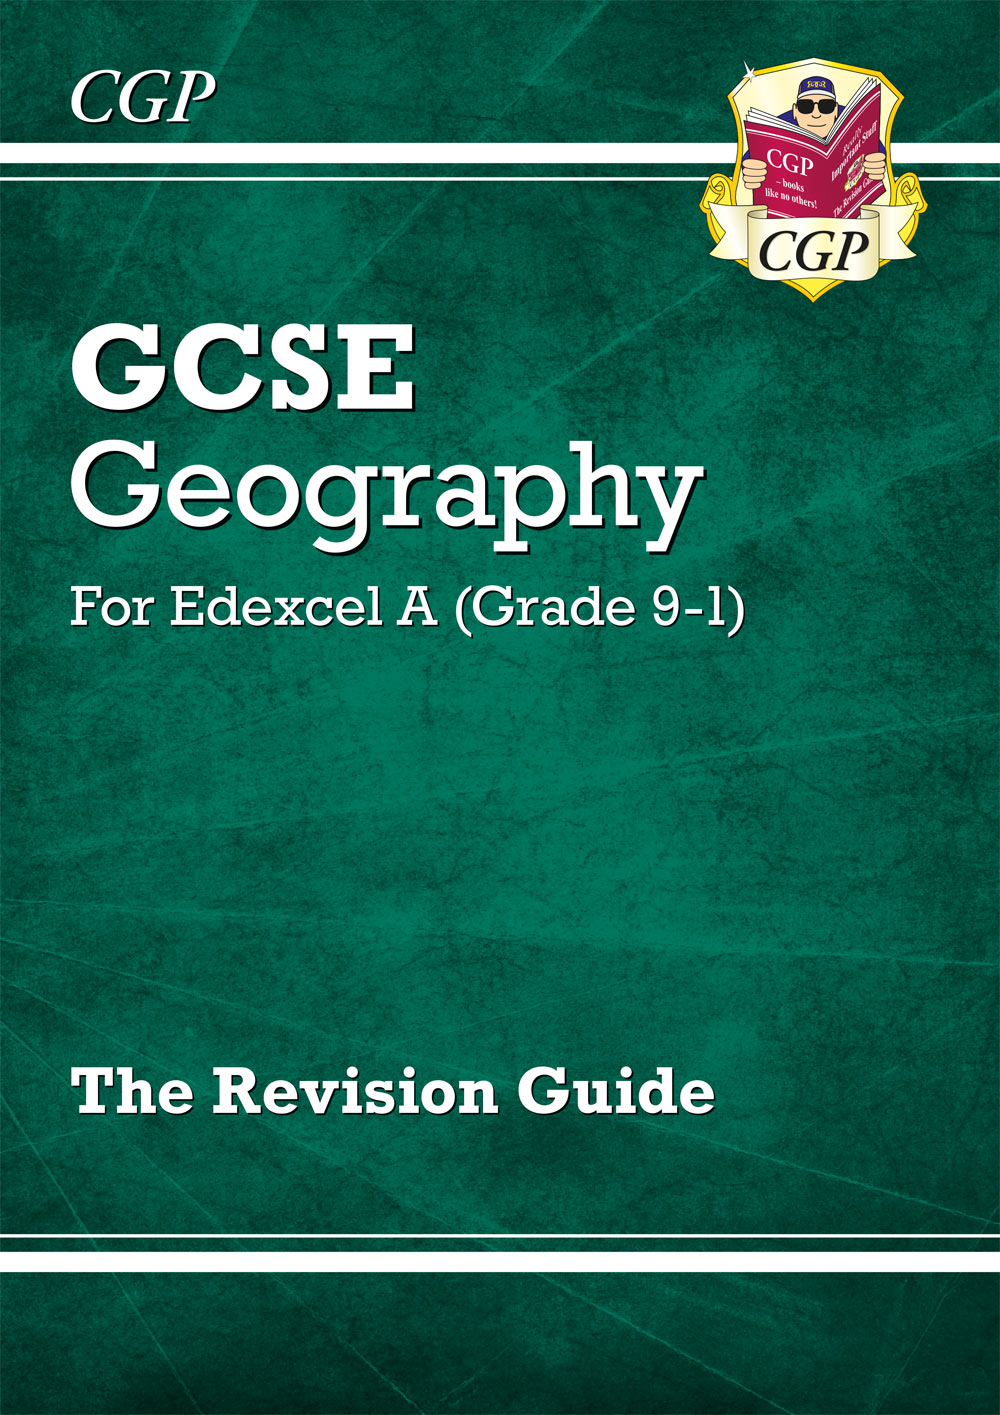 GEAR41 - Grade 9-1 GCSE Geography Edexcel A - Revision Guide